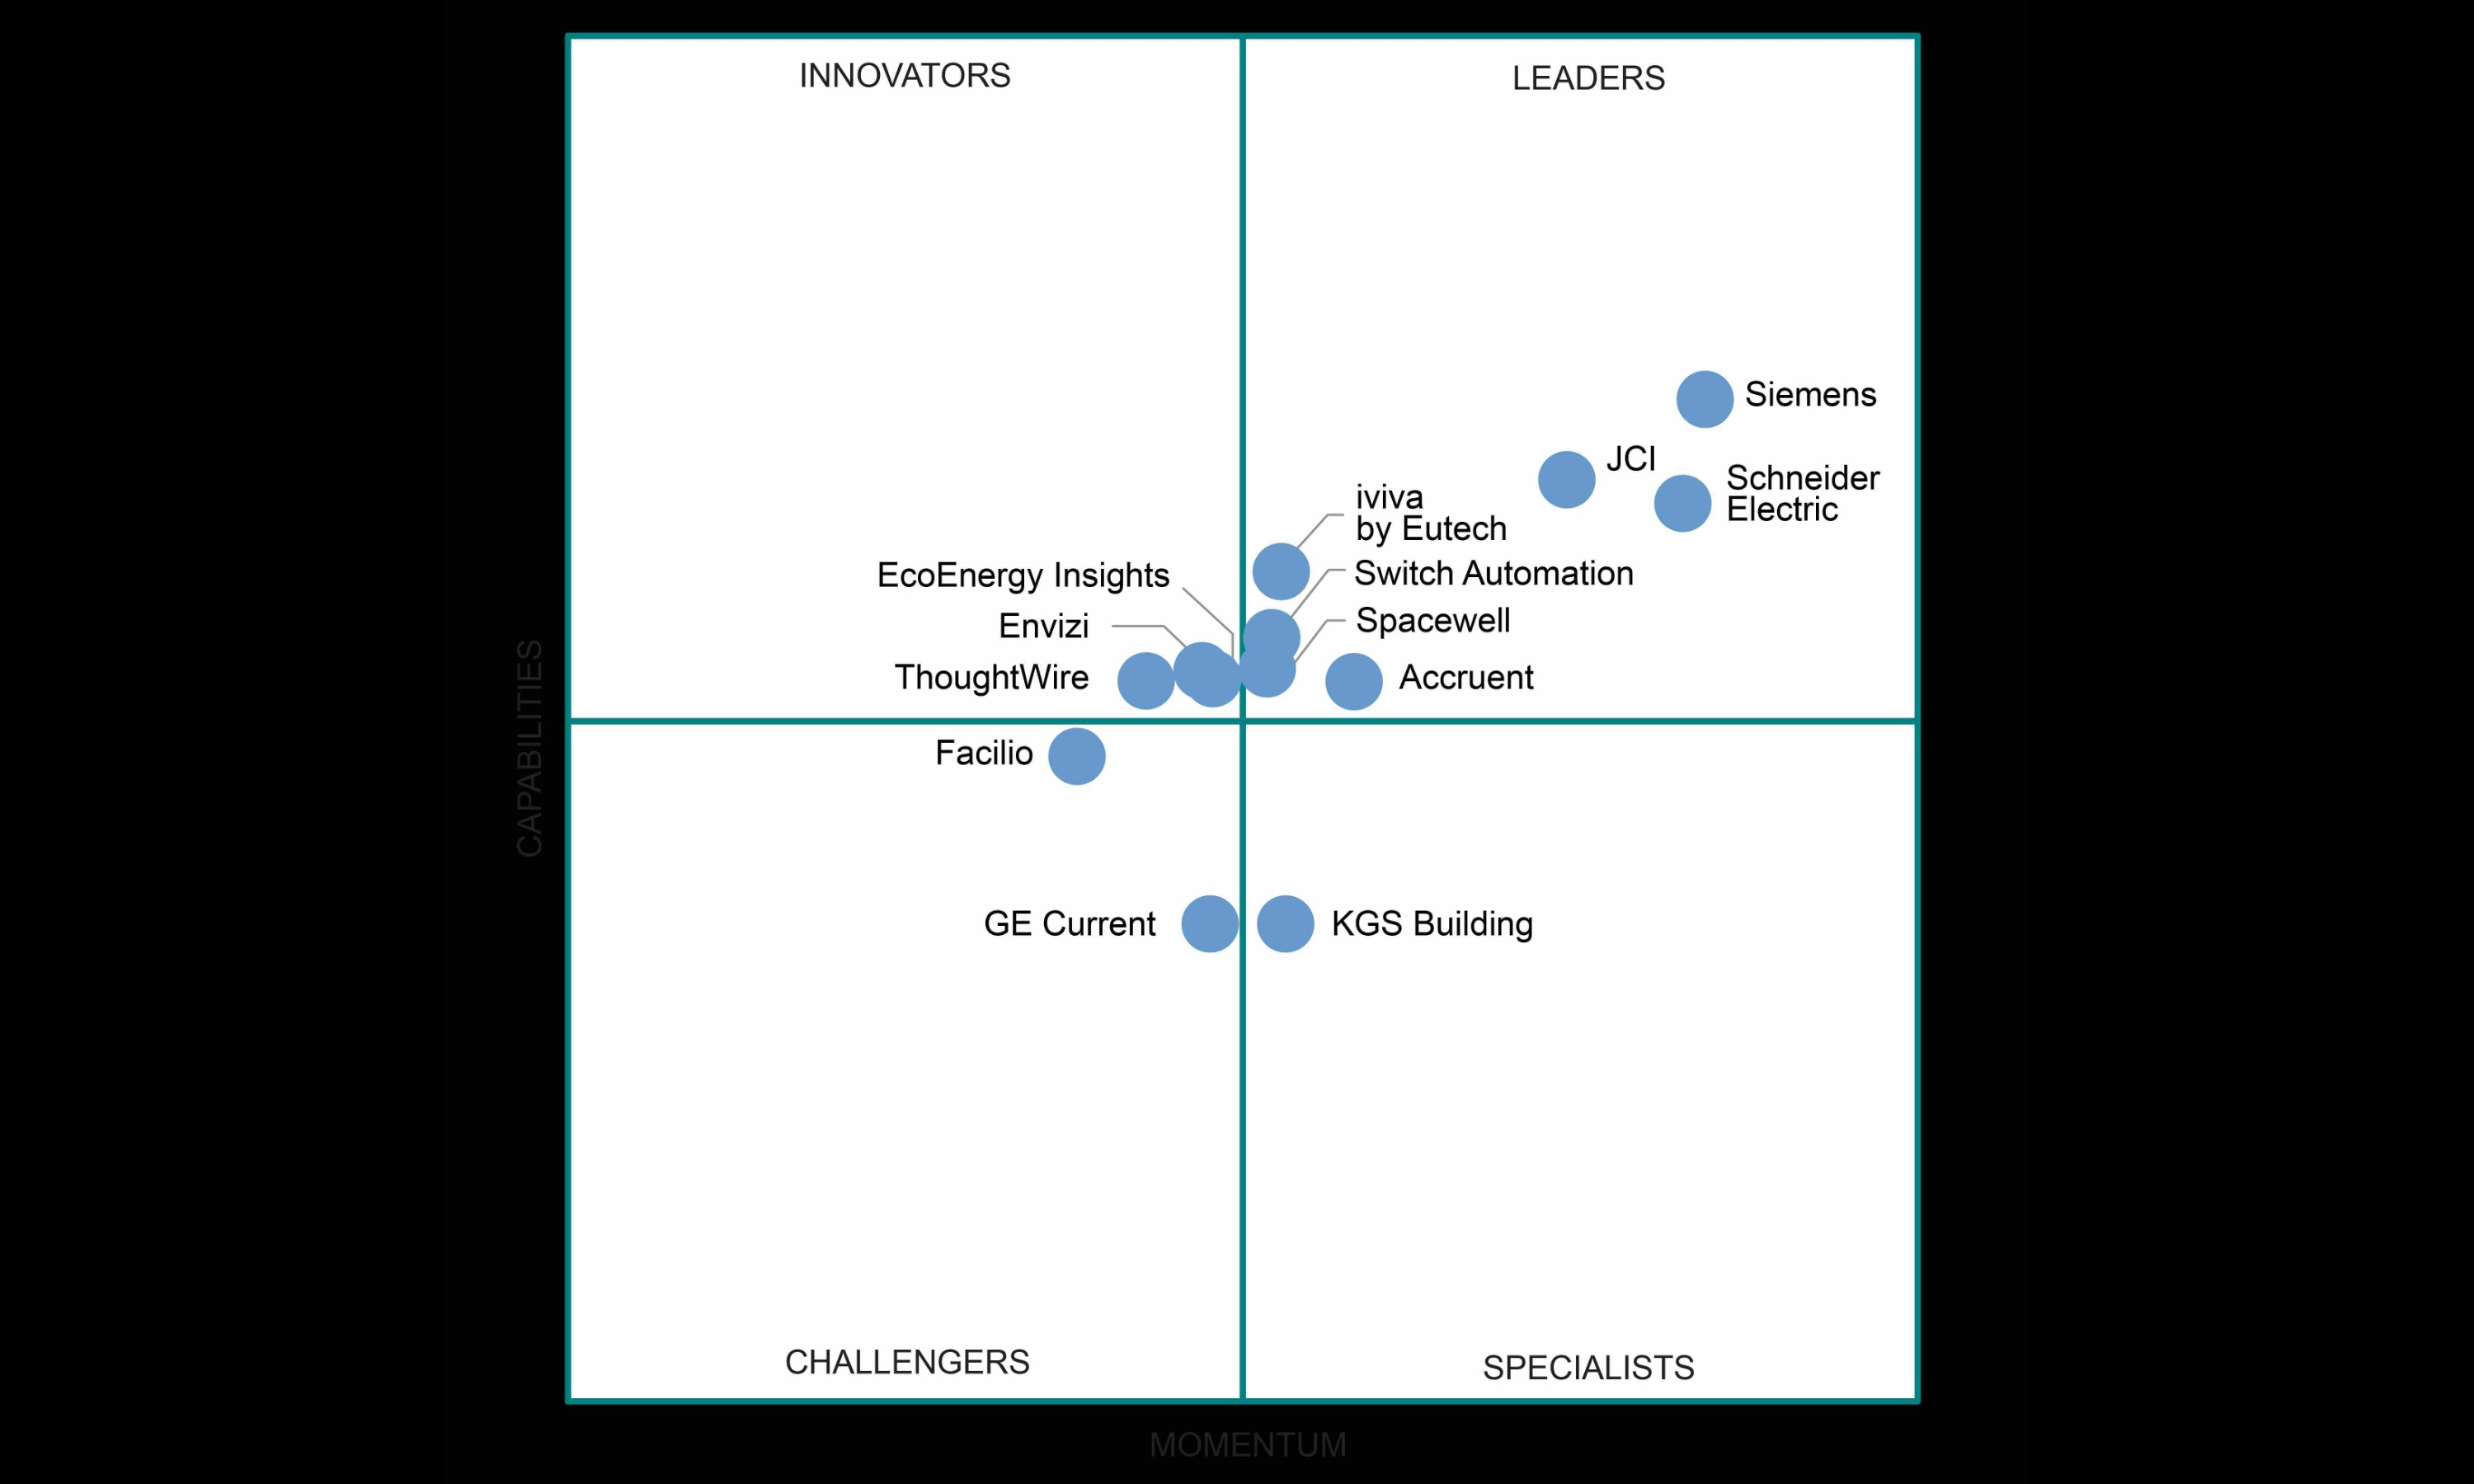 Siemens ranks as a leading IoT platform provider for smart buildings